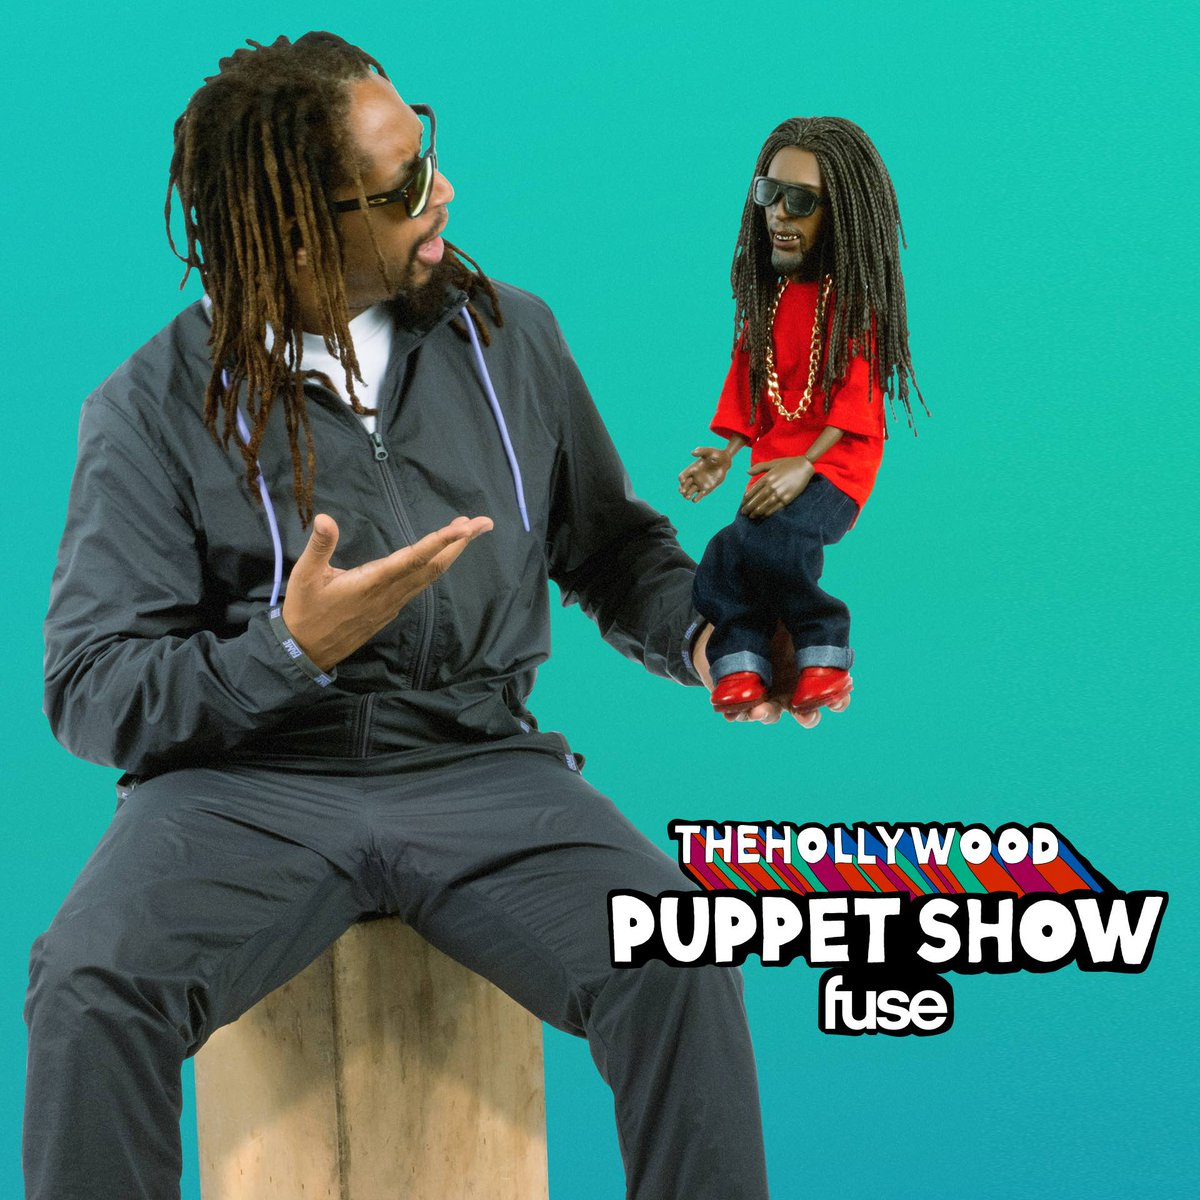 RT @fusetv: You don't want to miss @LilJon and @Mr_Camron on The Hollywood #PuppetShow tomorrow at 10:30p! https://t.co/sWTPsb4kOb